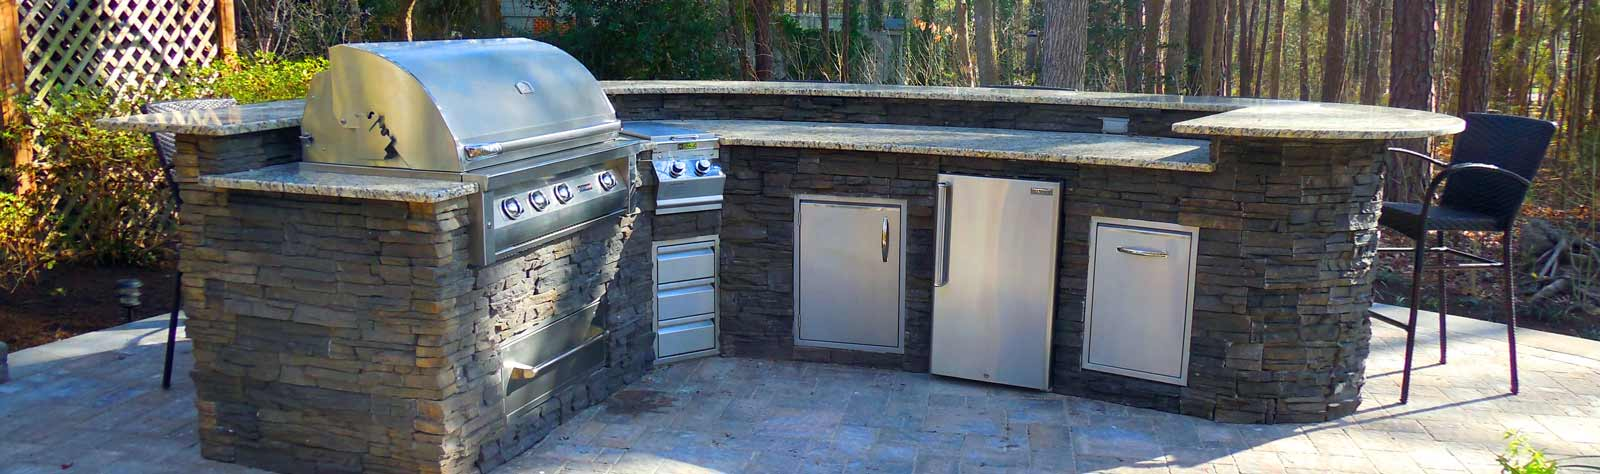 Why Go Anywhere Else When Planning Your Outdoor Kitchen